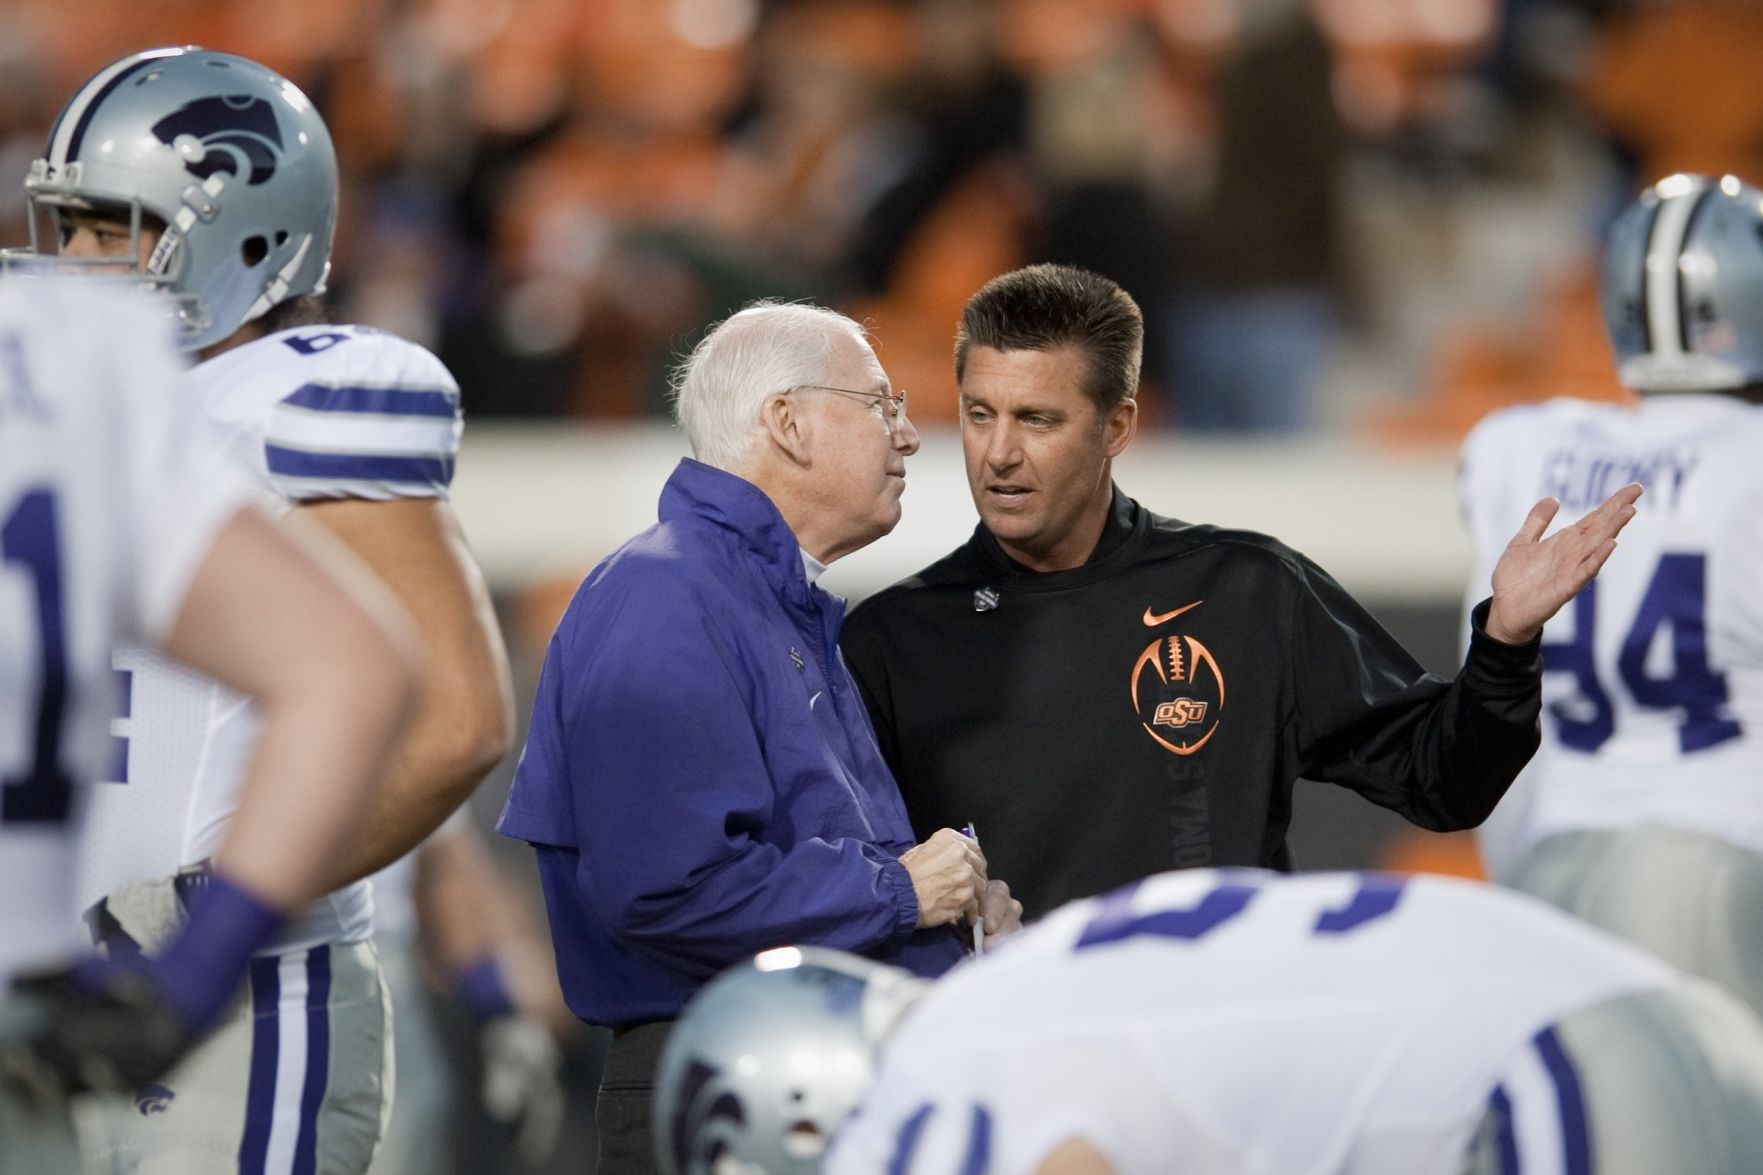 Bill Snyder commends Scott Frantz's decision to announce he's gay